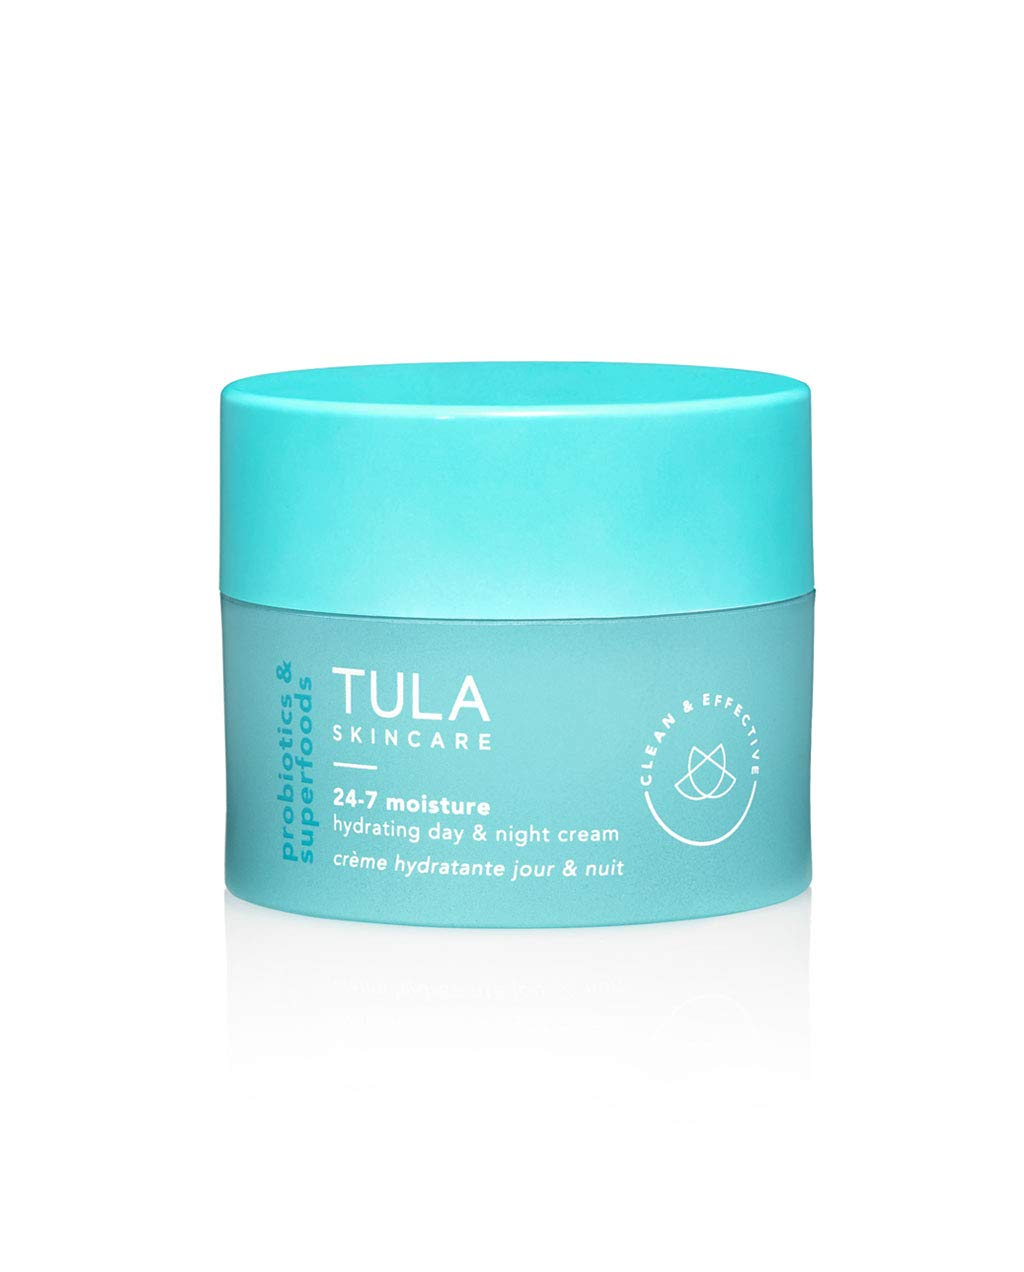 Hydrating Day and Night Cream by Tula